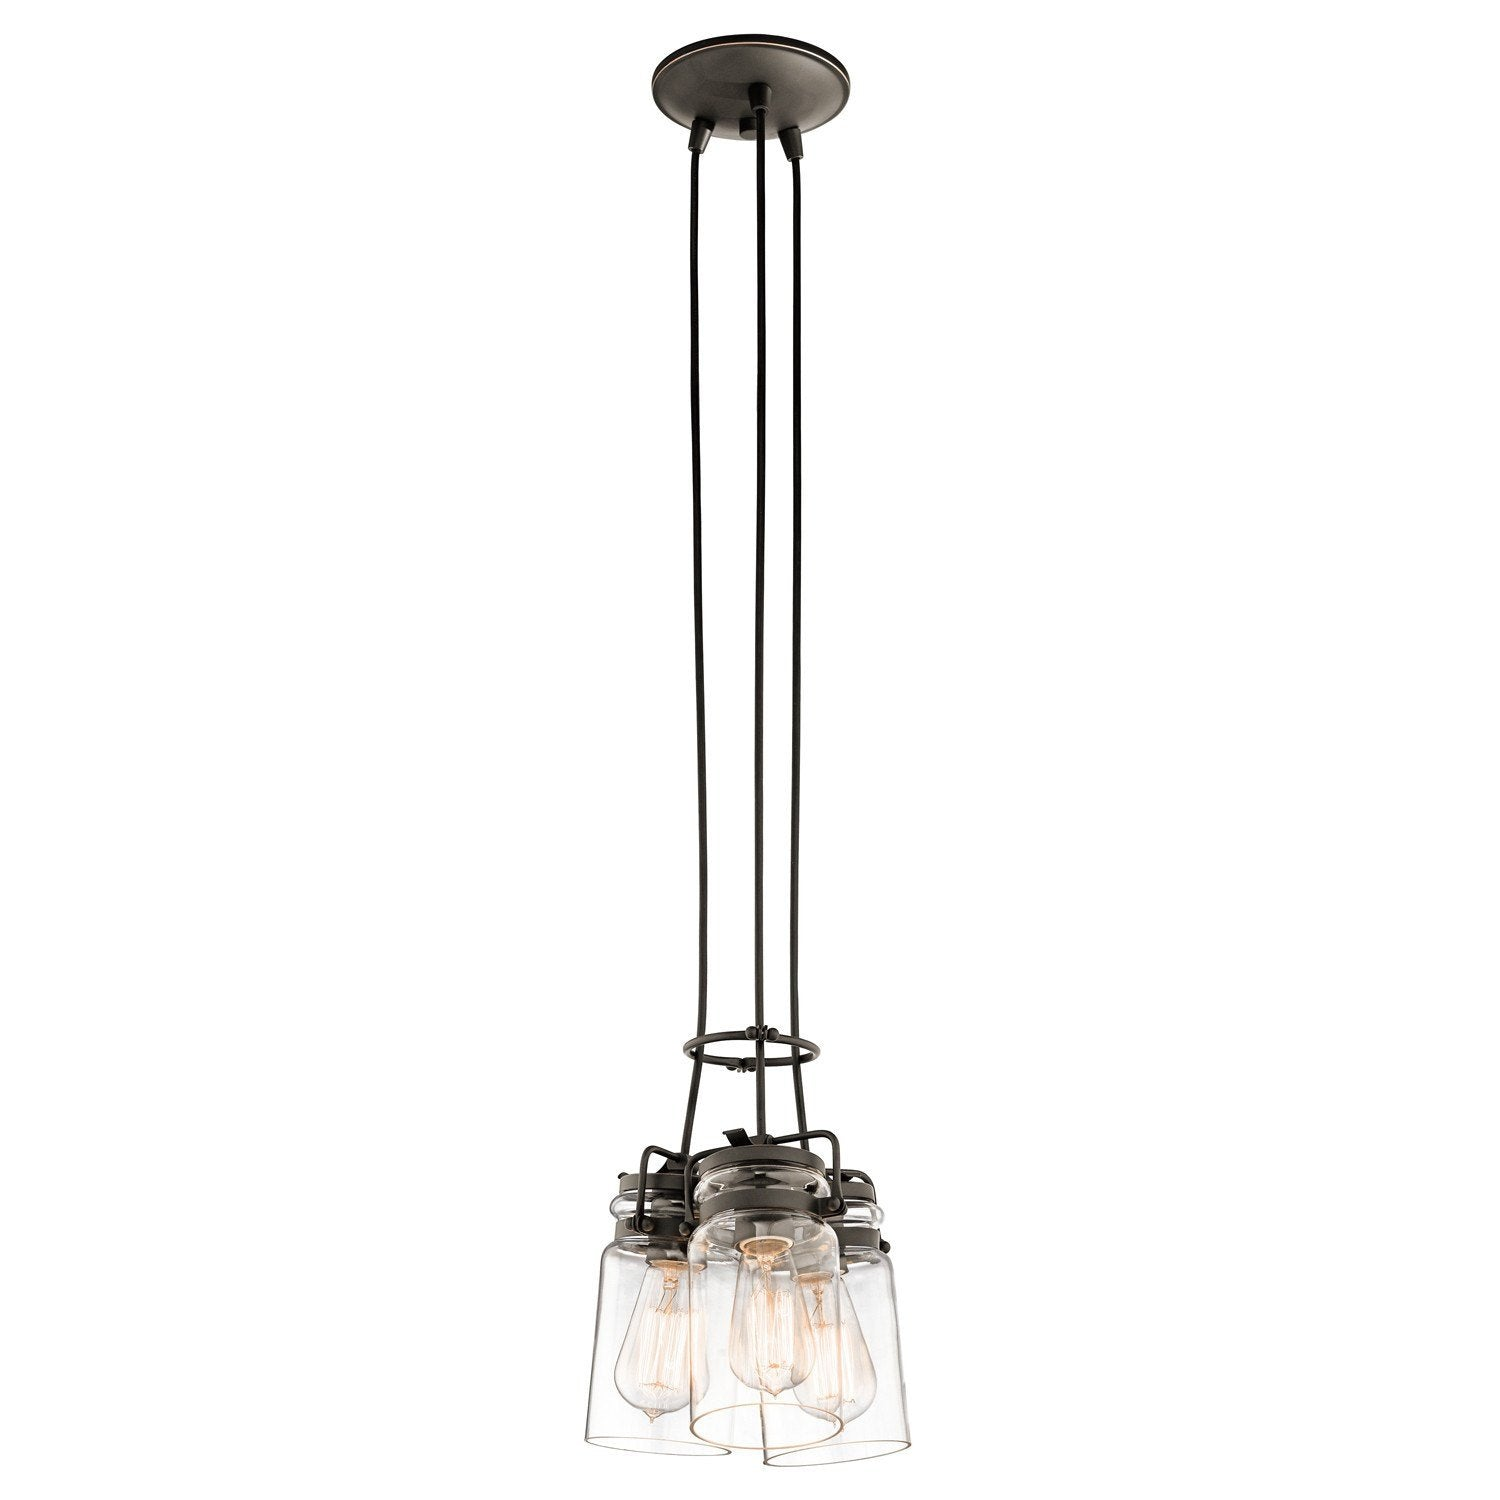 Kichler Brinley 3 Light Pendant Light - London Lighting - 1